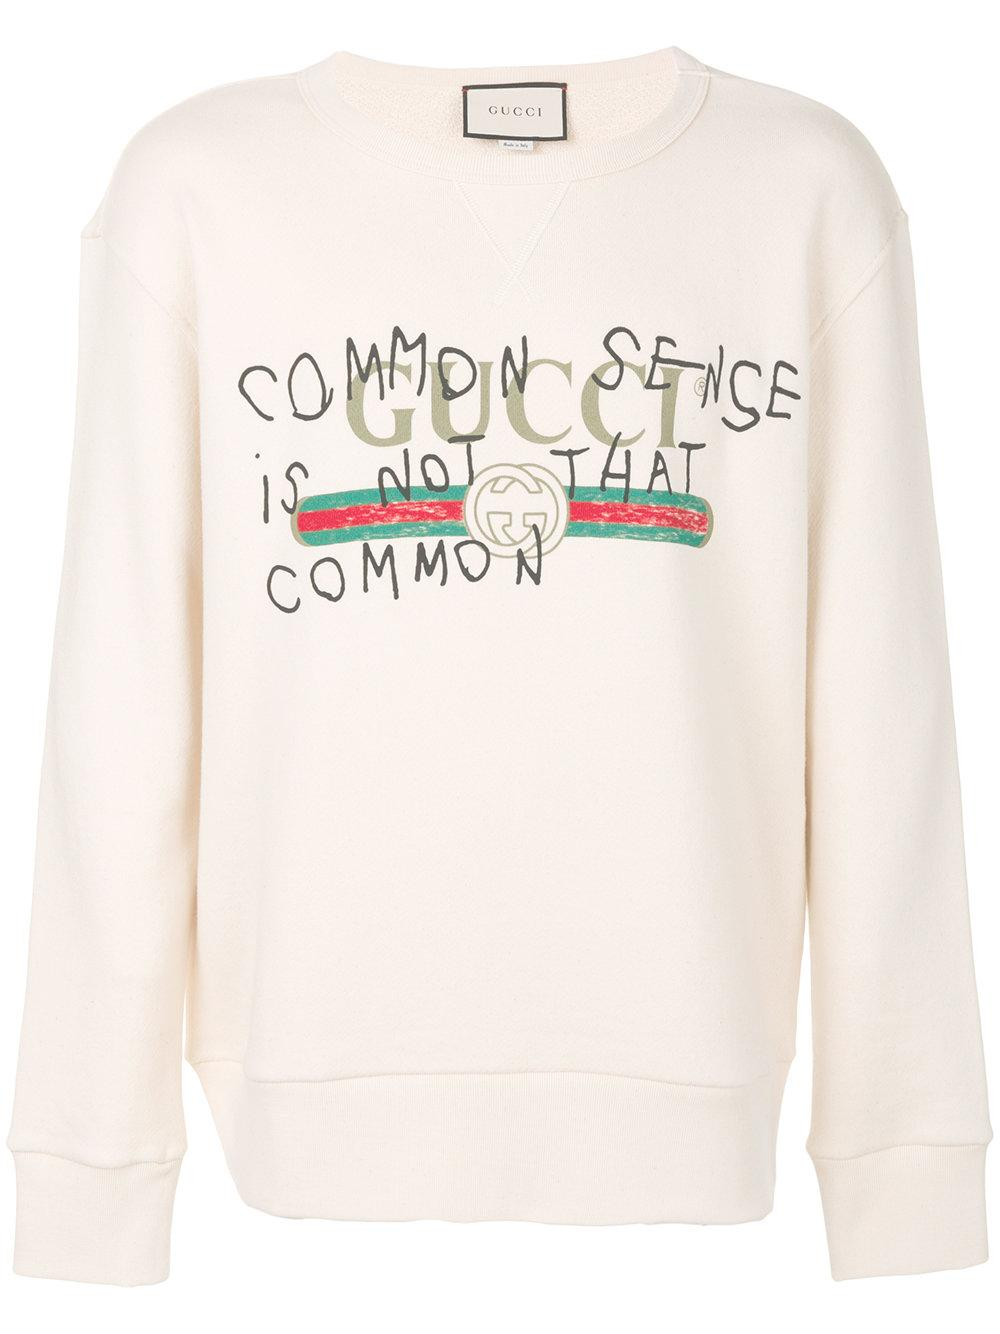 af338d3b60d Lyst - Gucci Common Sense Is Not That Common Sweatshirt in White for Men